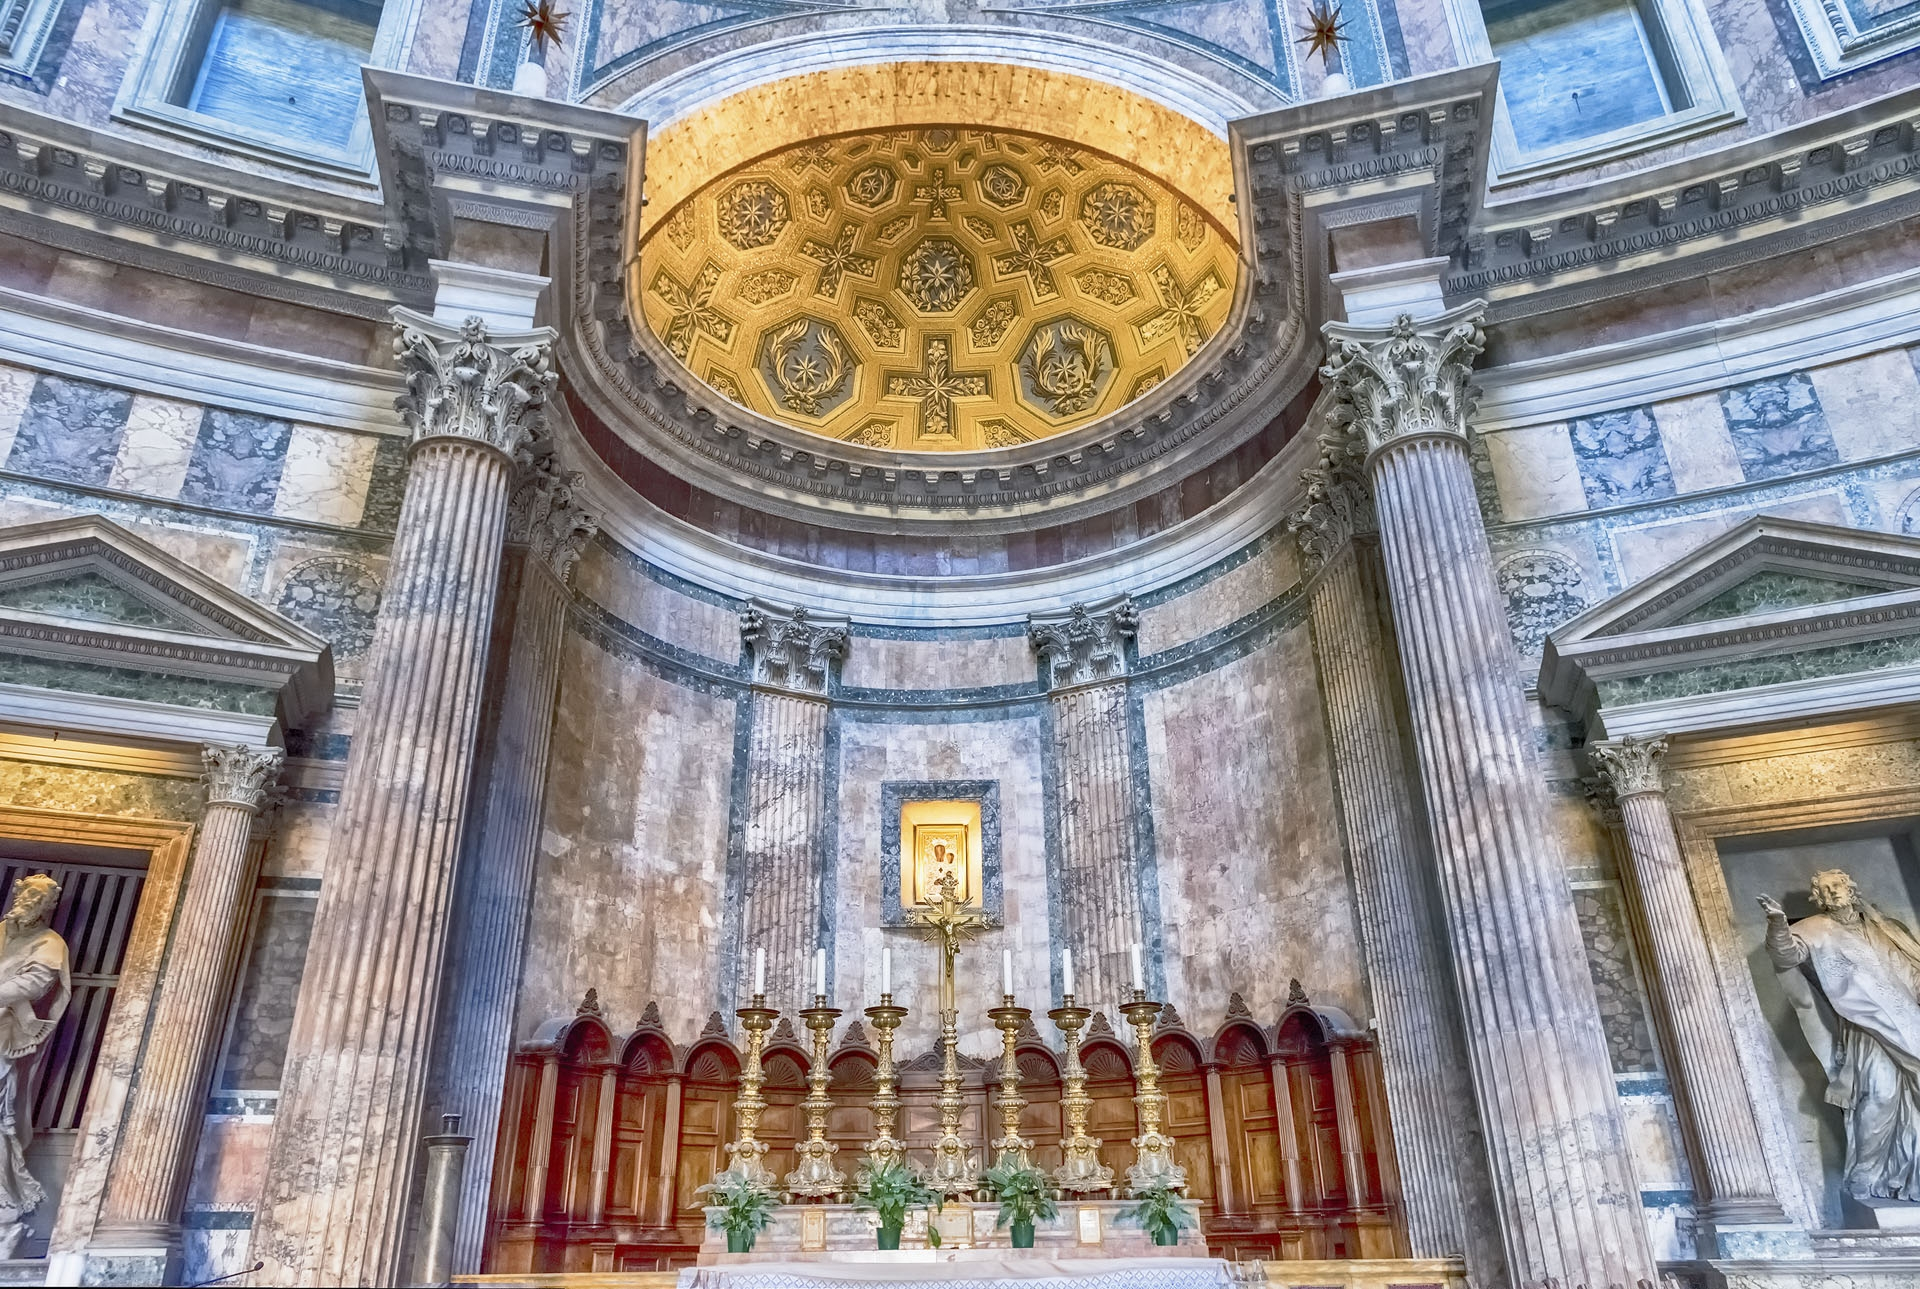 Interior of the Pantheon in Rome, Italy